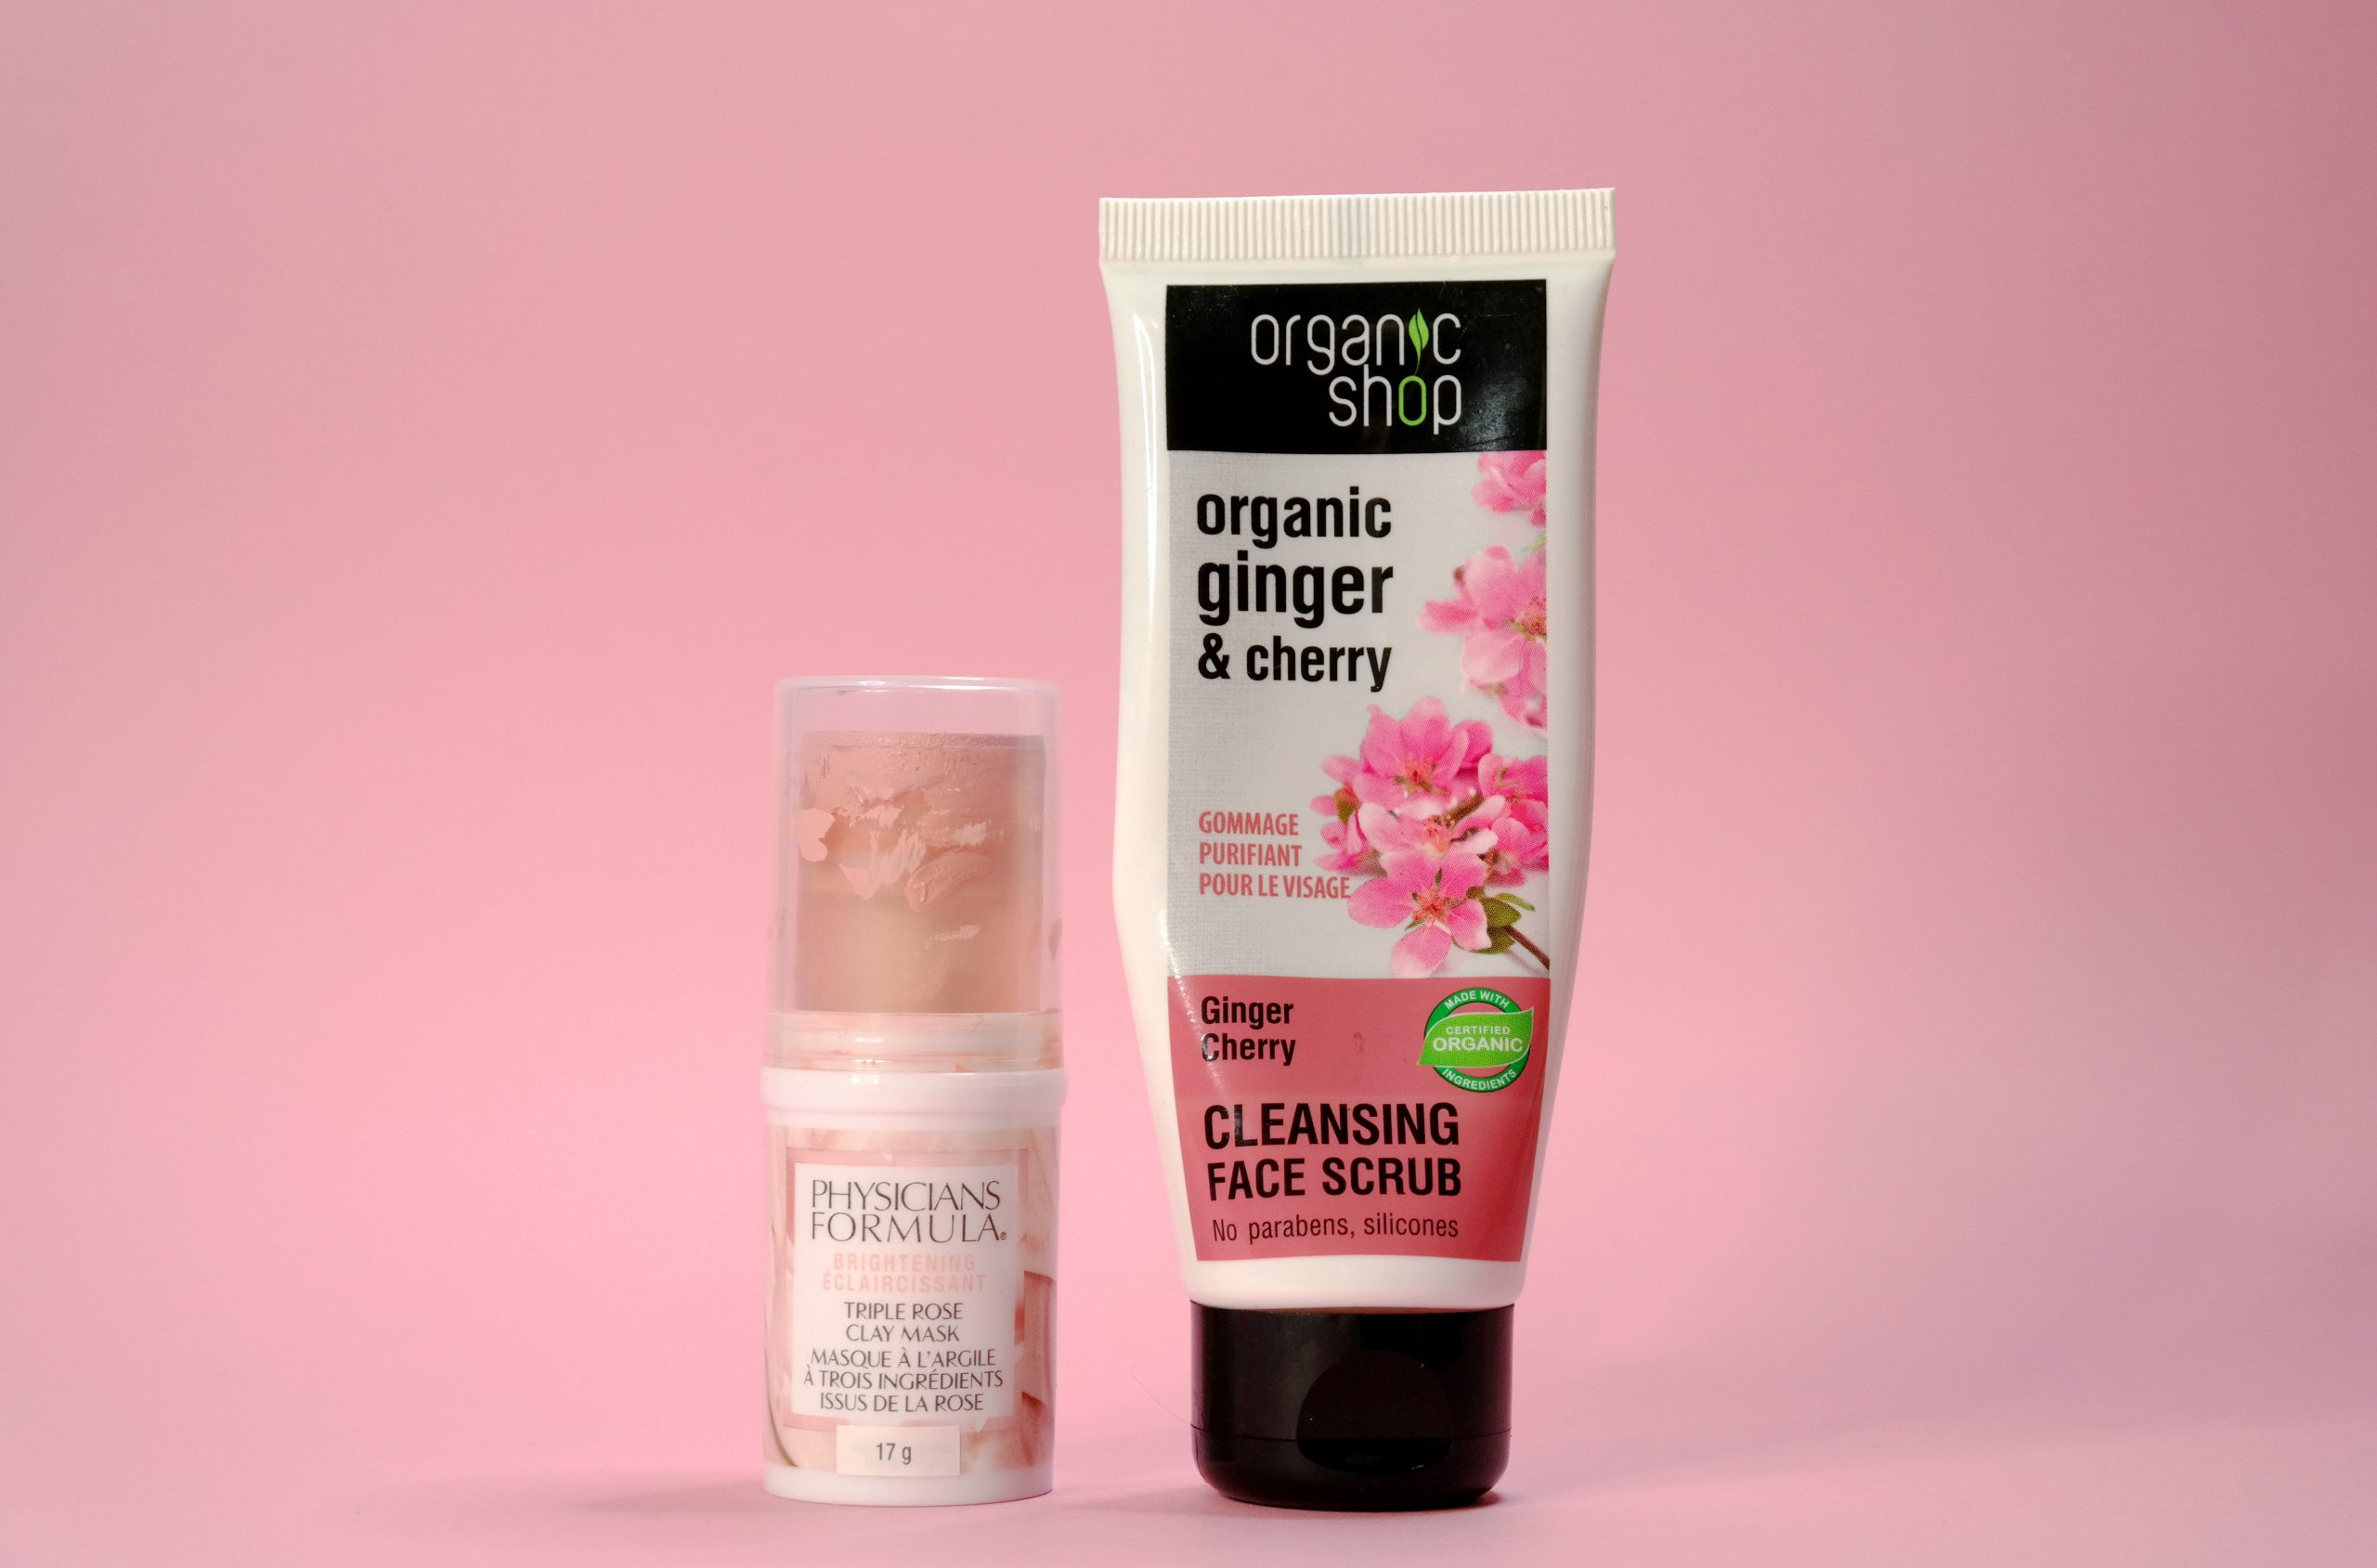 Physicians formula triple rose clay mask, Organic shop ginger cherry cleansing scrub